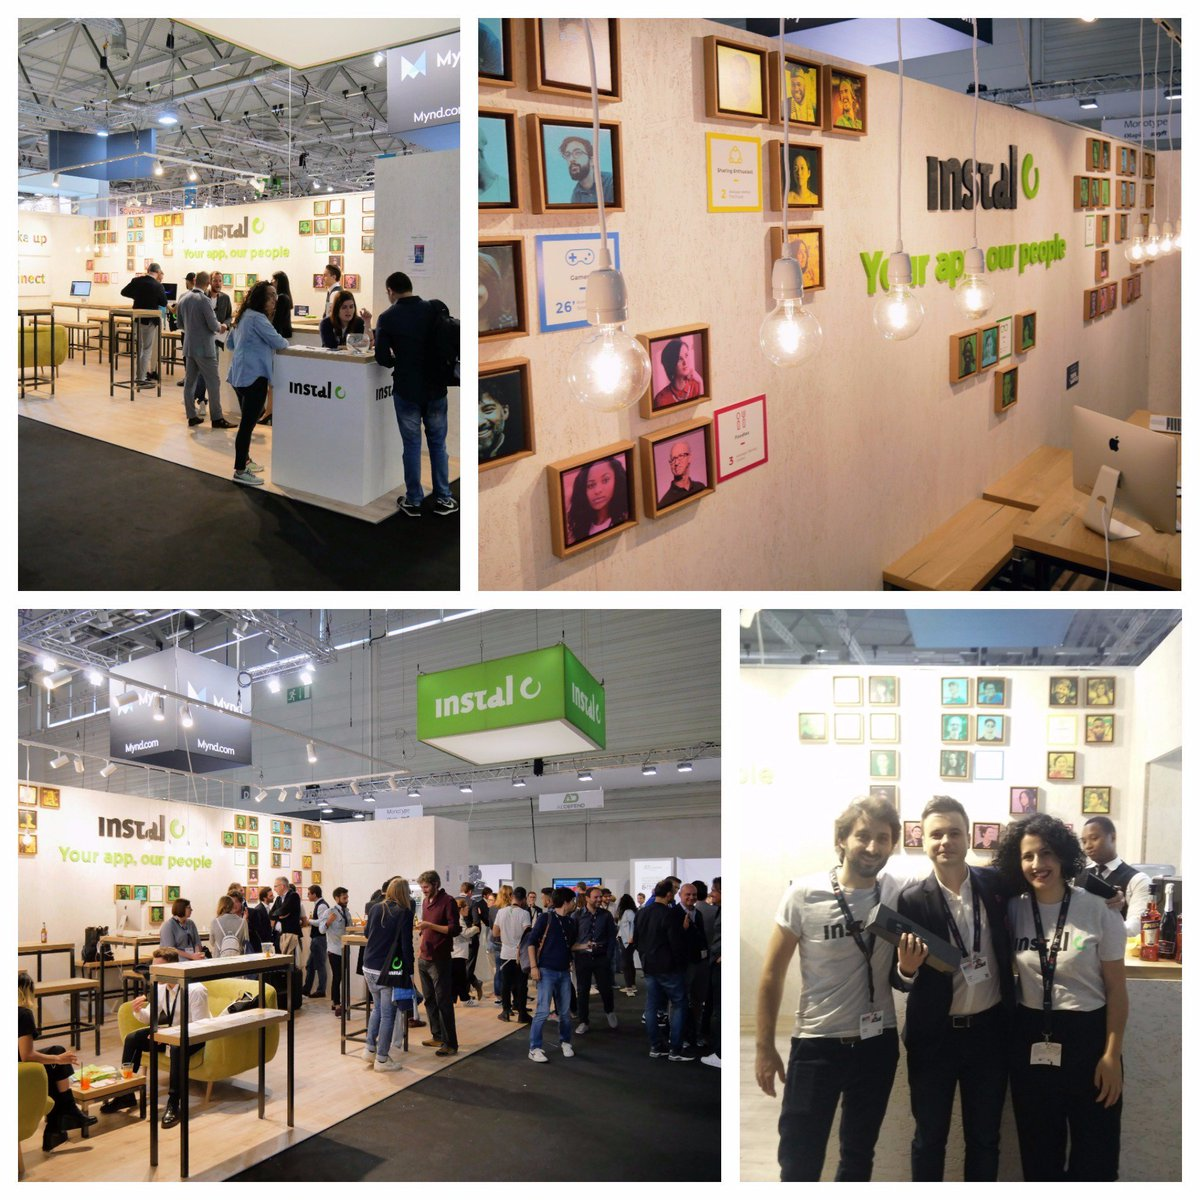 Last week we took part in @dmexco 2017. Here&#39;s some snaps of our days in the trade fair! #Dmexco2017 #dmexco #DigitalMarketing #Apps #mobile<br>http://pic.twitter.com/YDKQeQ0QeC